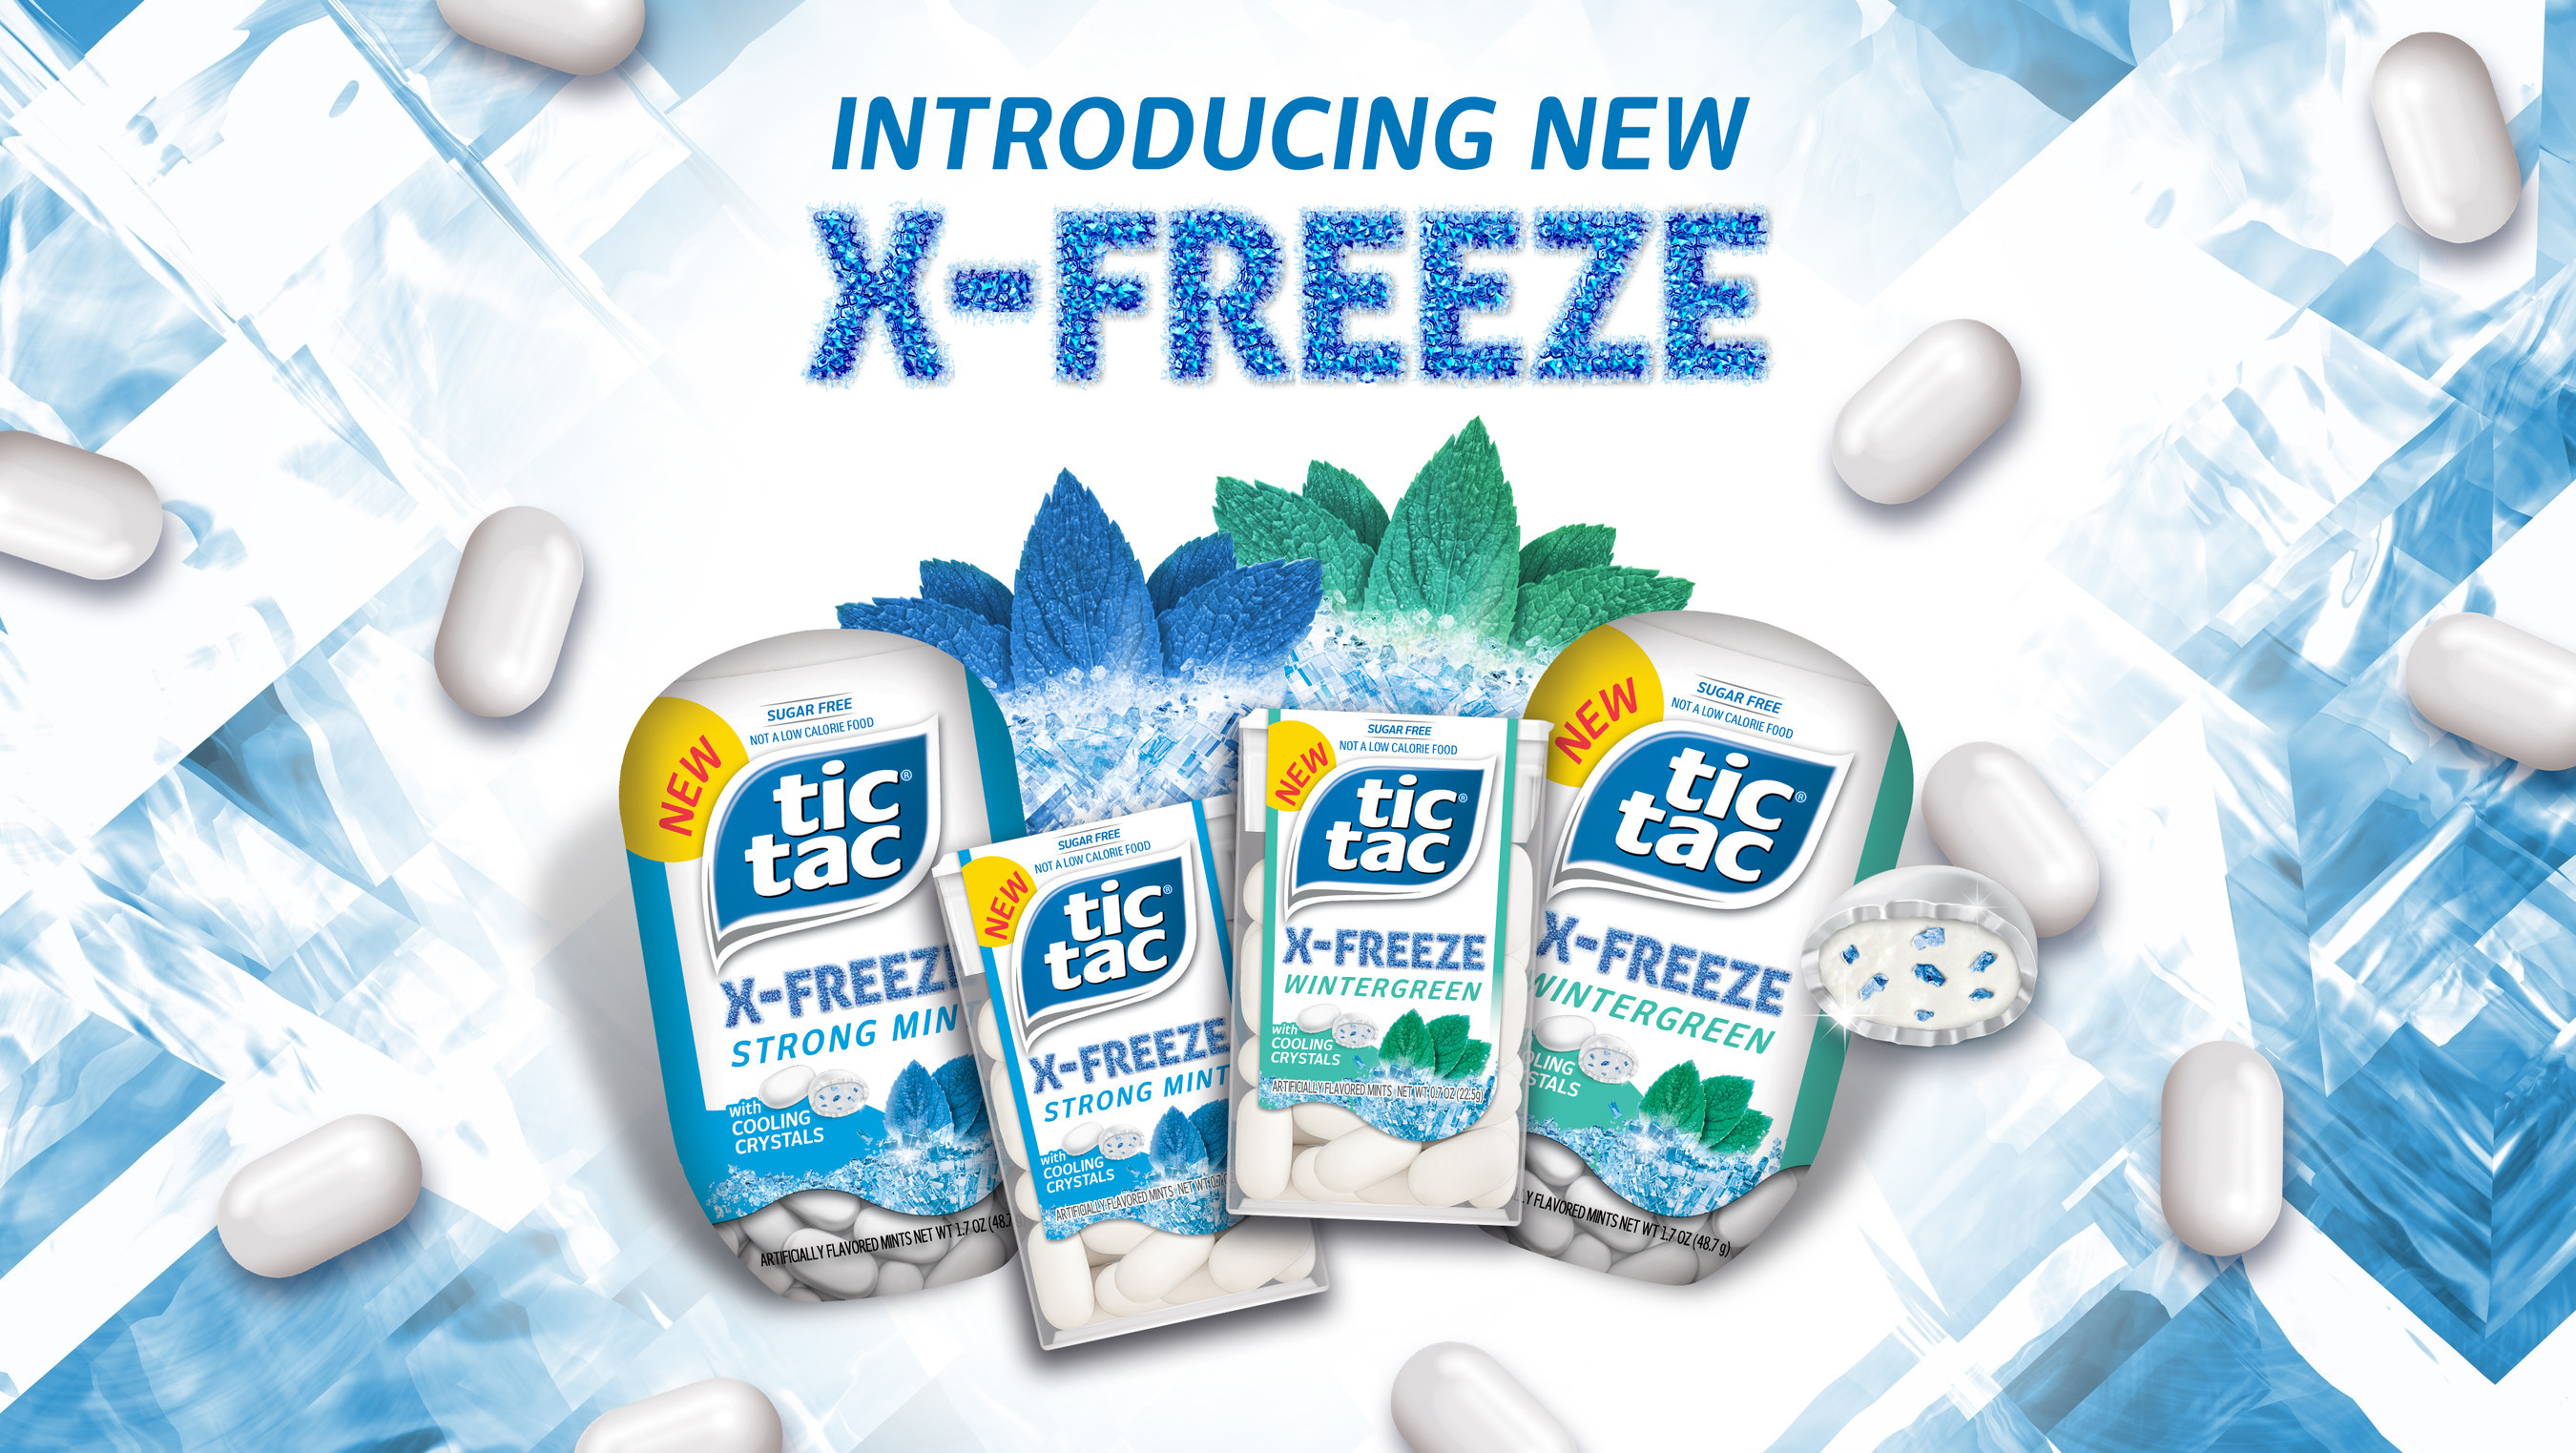 Tic Tac X-Freeze